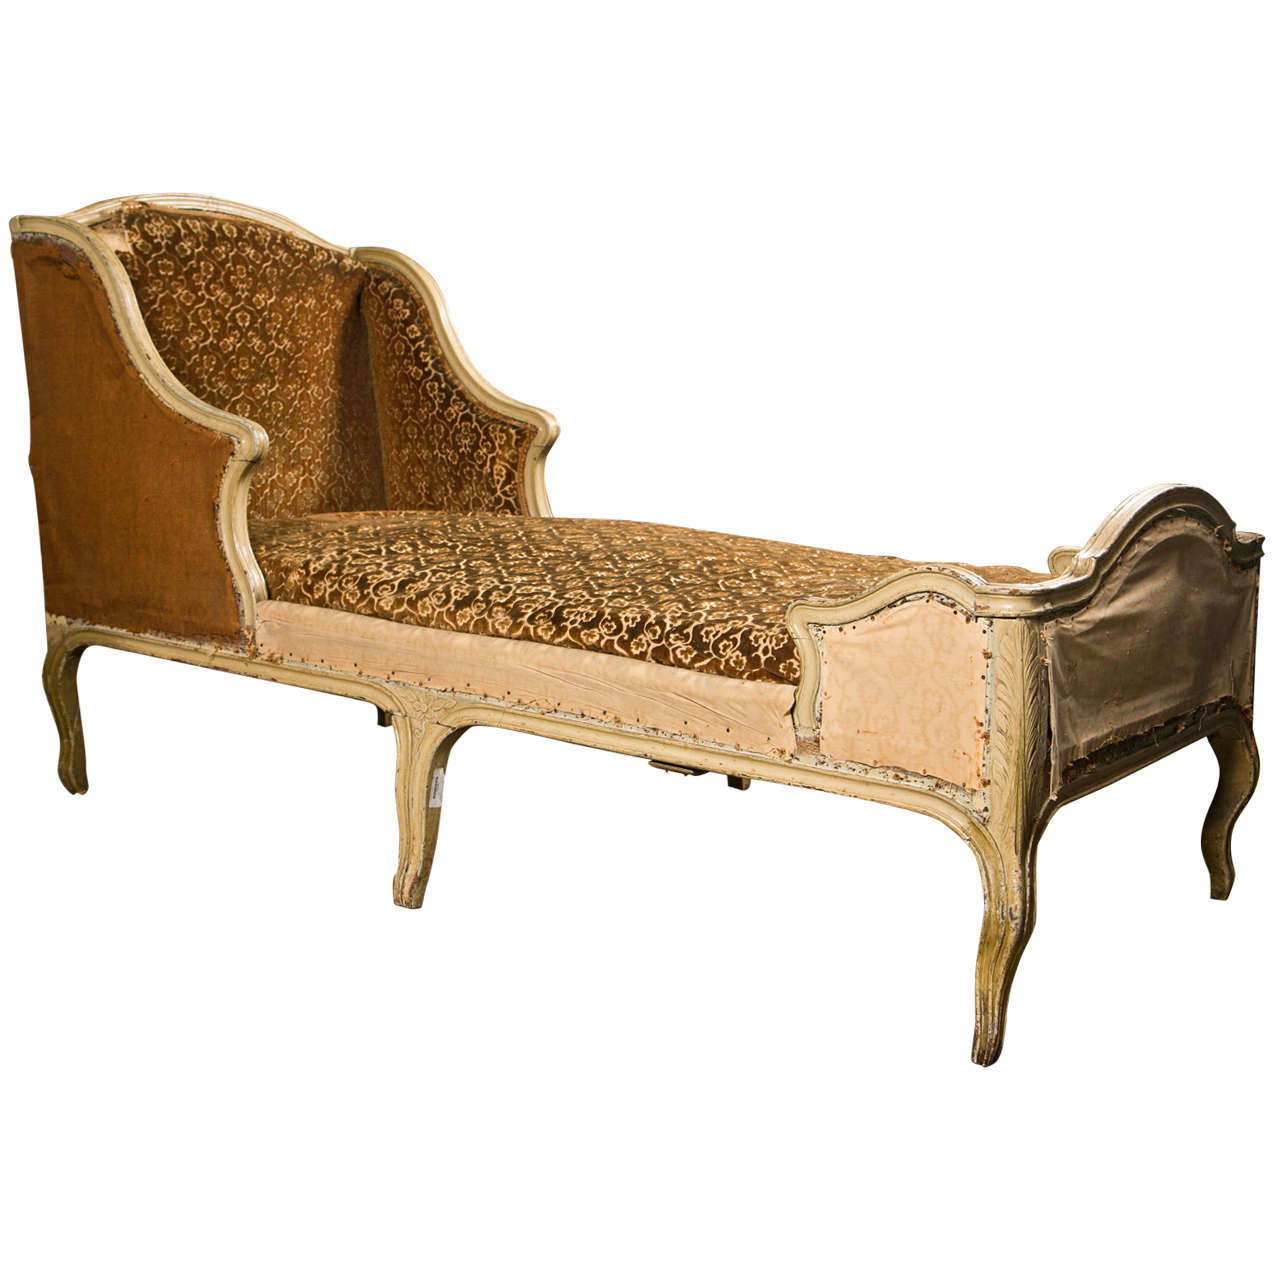 French painted oak chaise longue in the rococo style for Chaise longue french